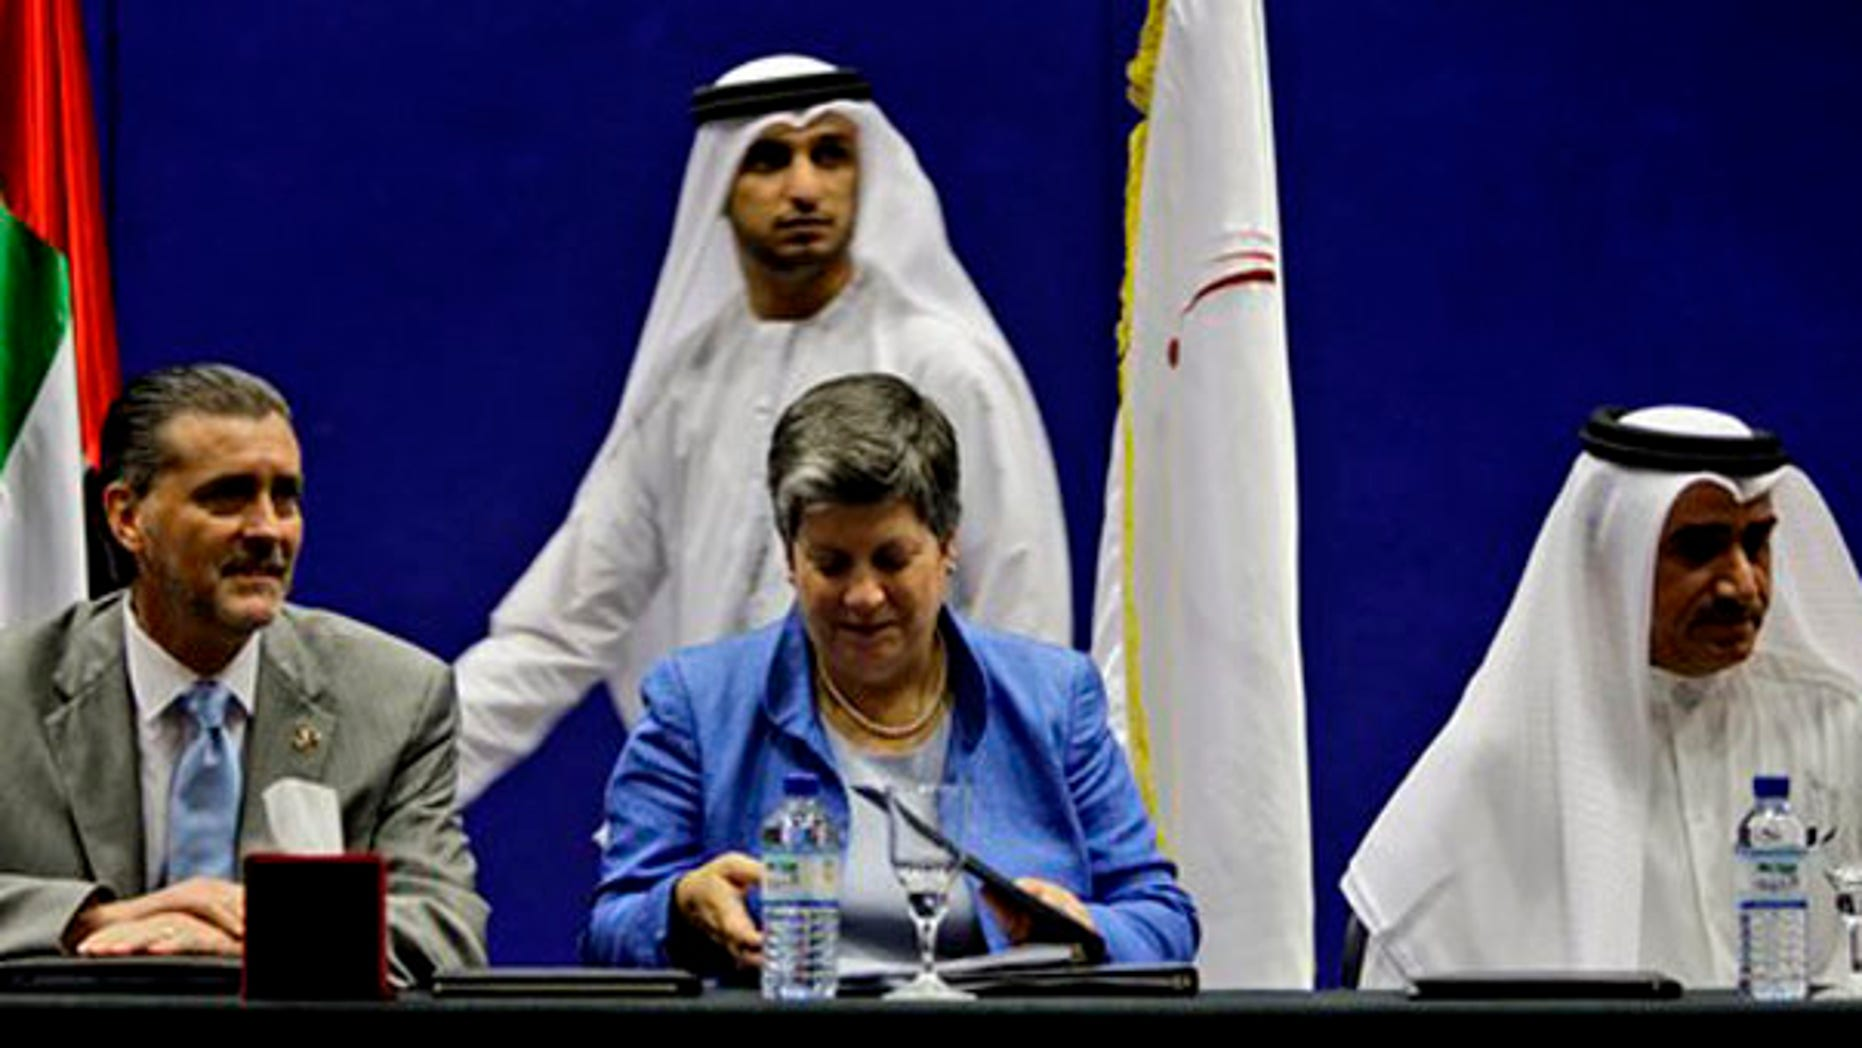 Secretary of Homeland Security Janet Napolitano, center, prepares her papers before giving a speech at a conference at the Zayed University in Abu Dhabi, United Arab Emirates, Nov. 8. (AP Photo)